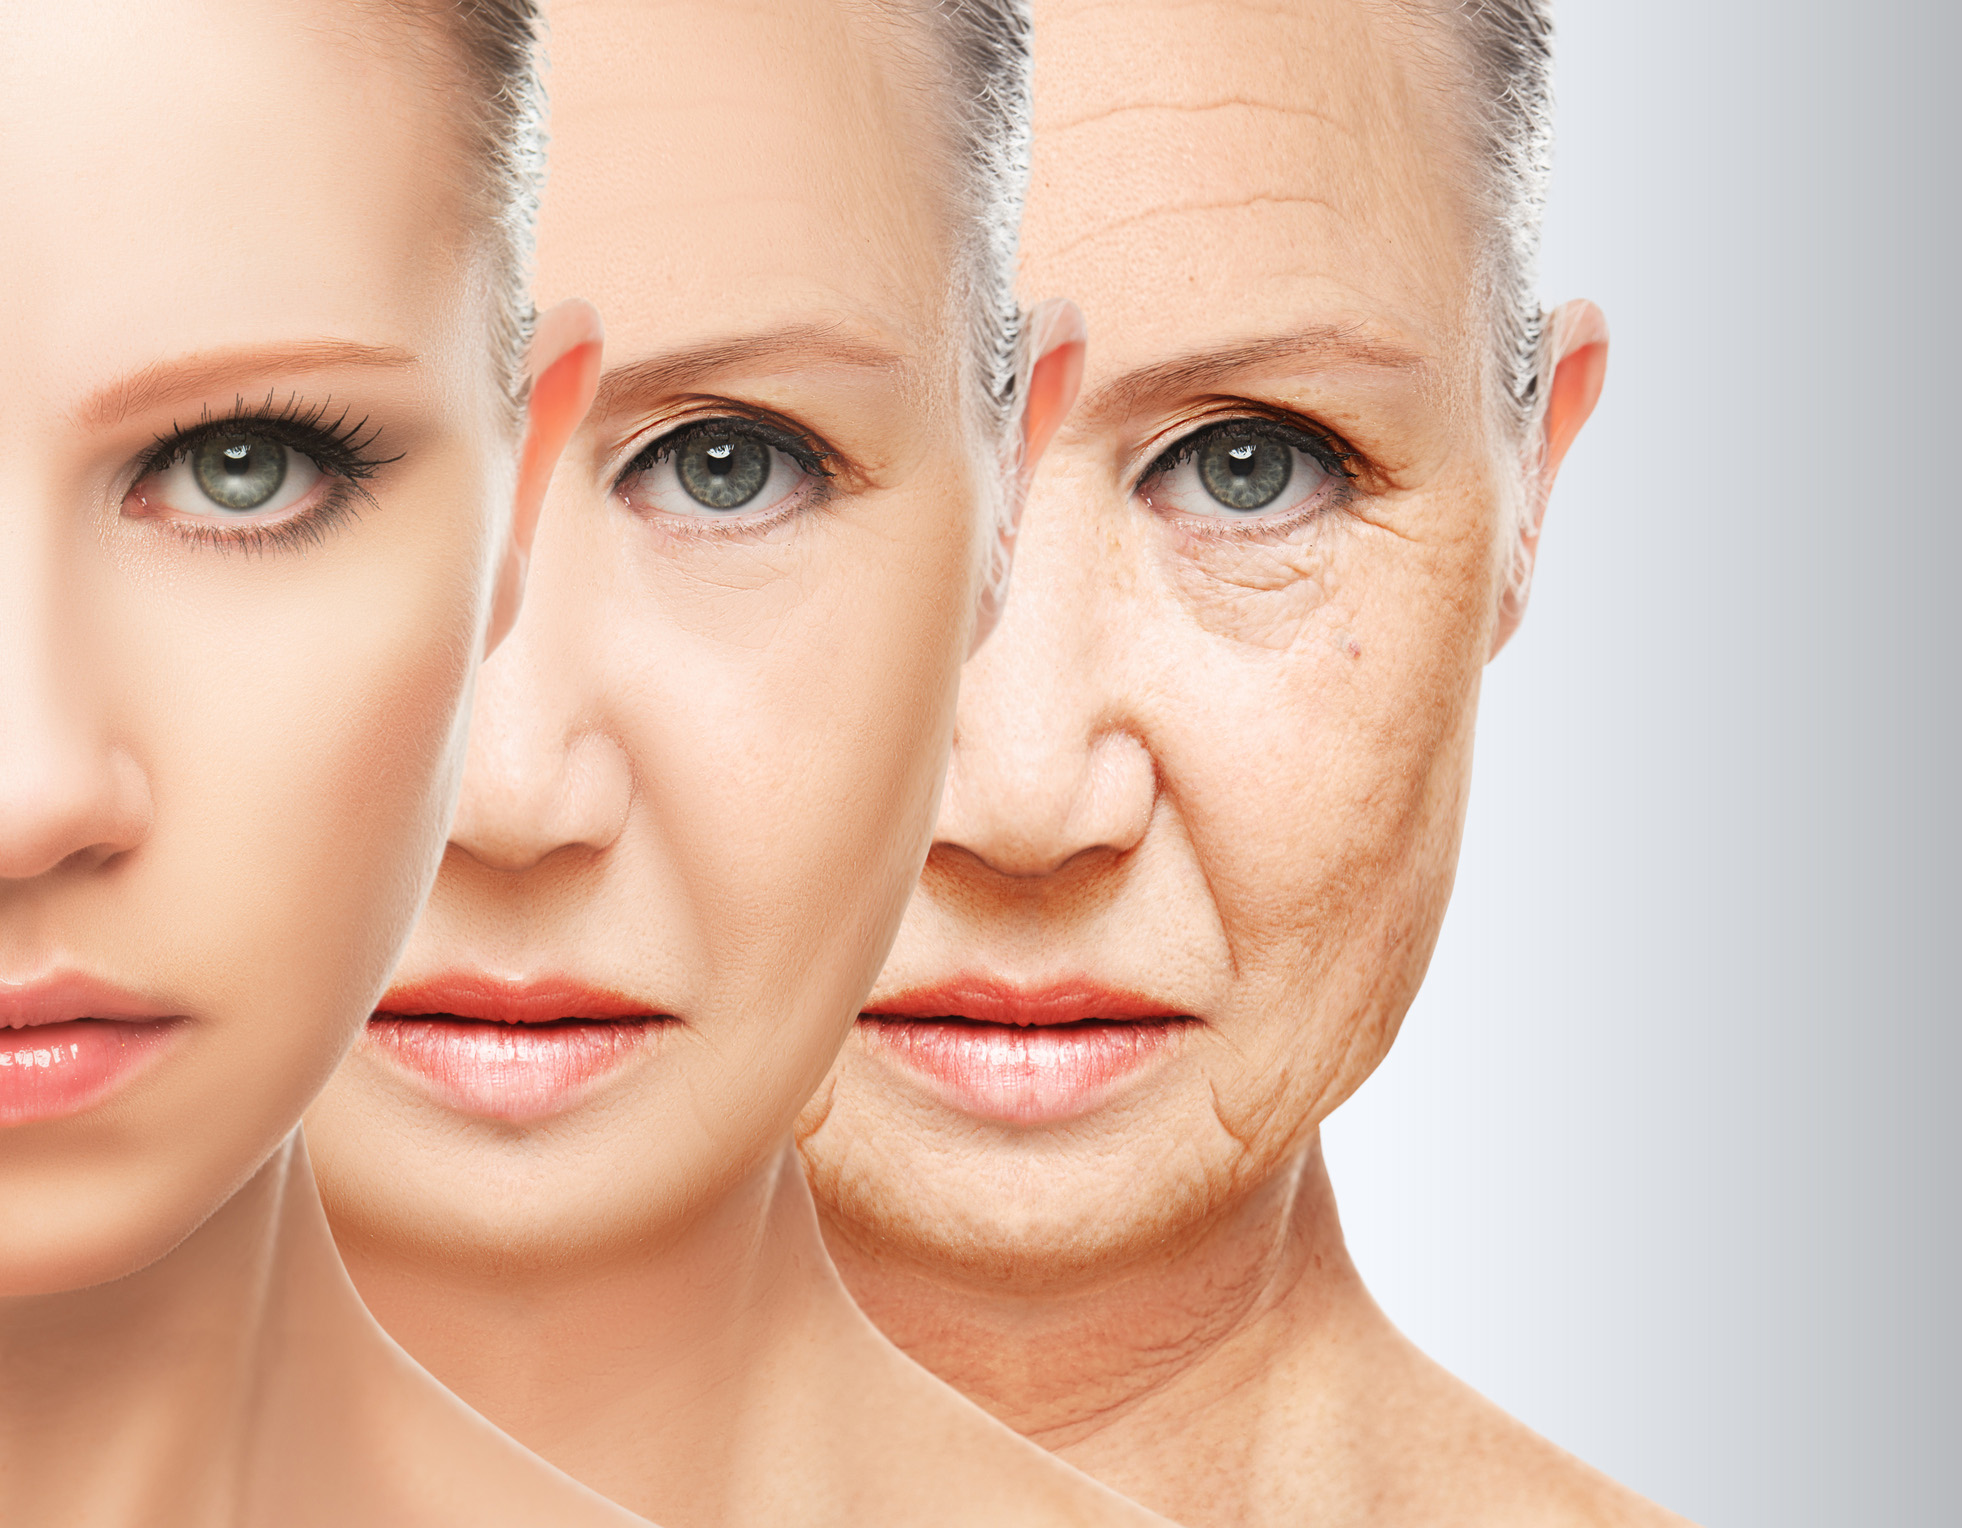 Three images of a woman gradually aging